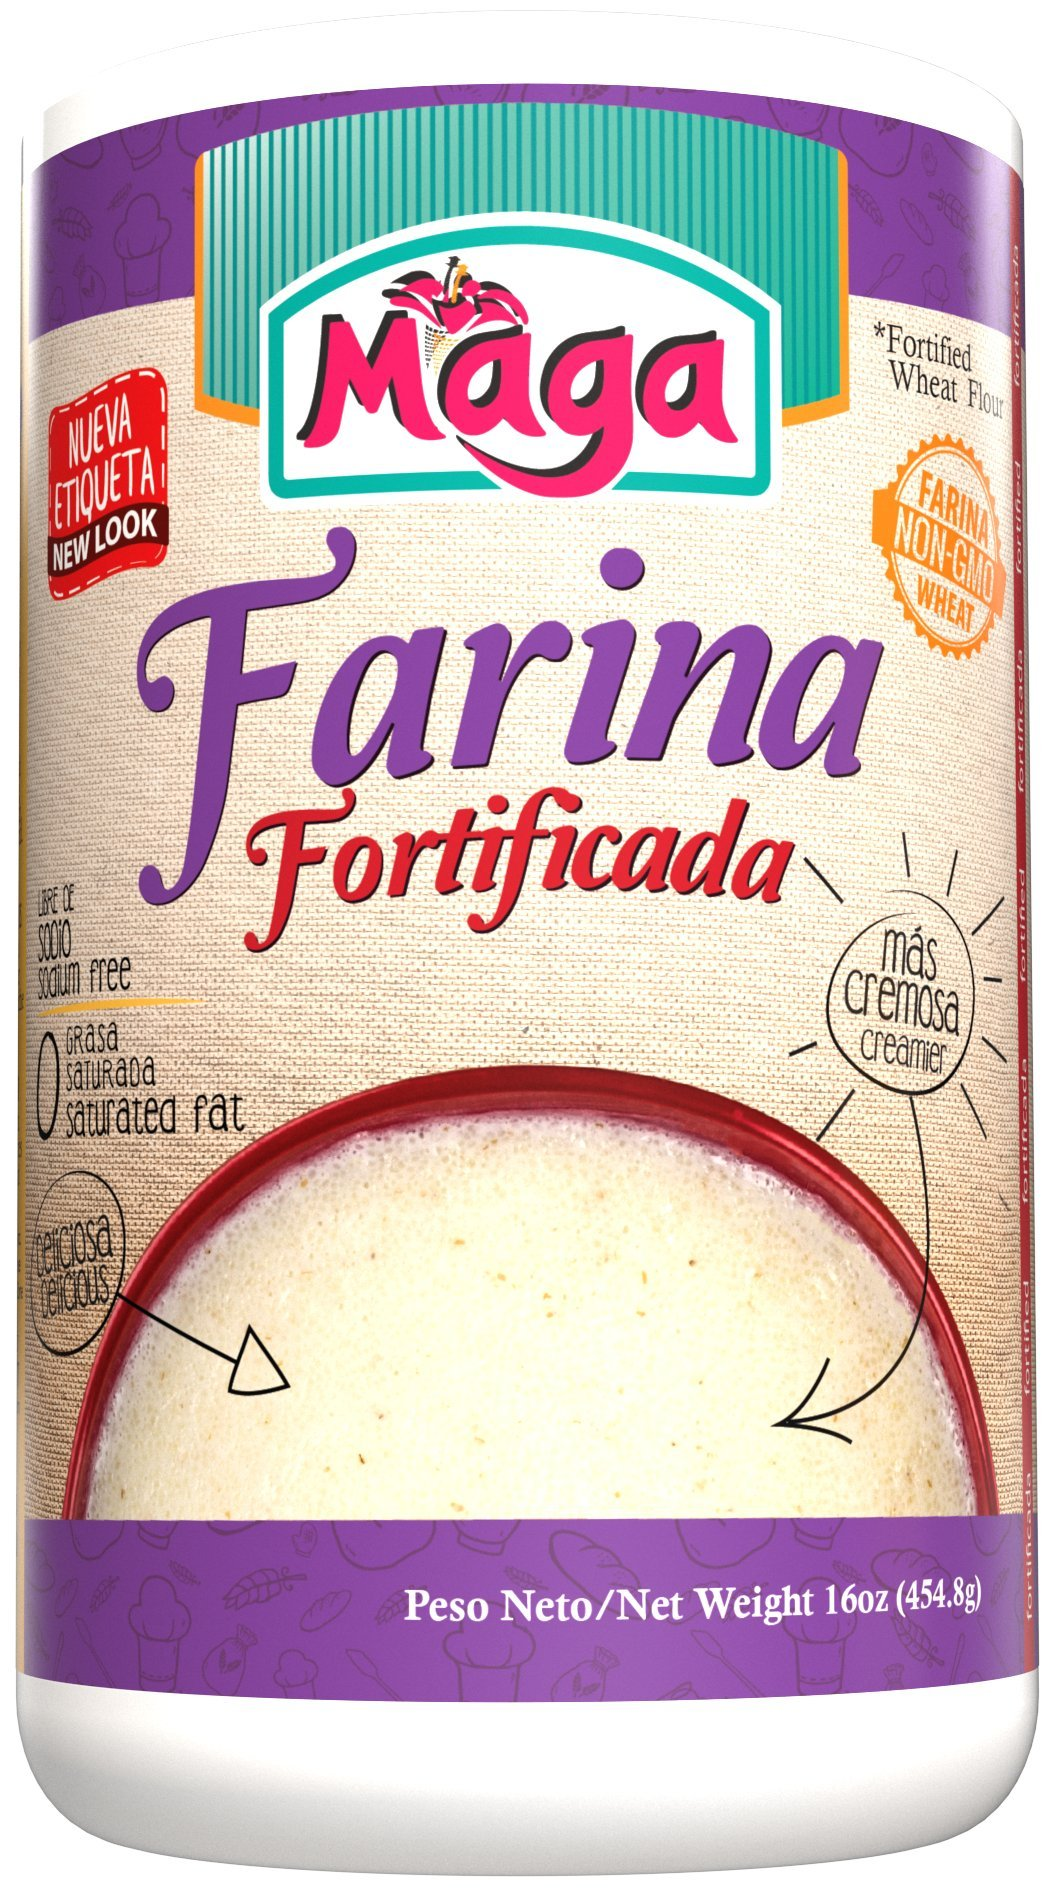 FARINA Fortificada (Fortified Cream of Wheat) by Maga Foods Puerto Rico - 12 Oz (Count of 2)